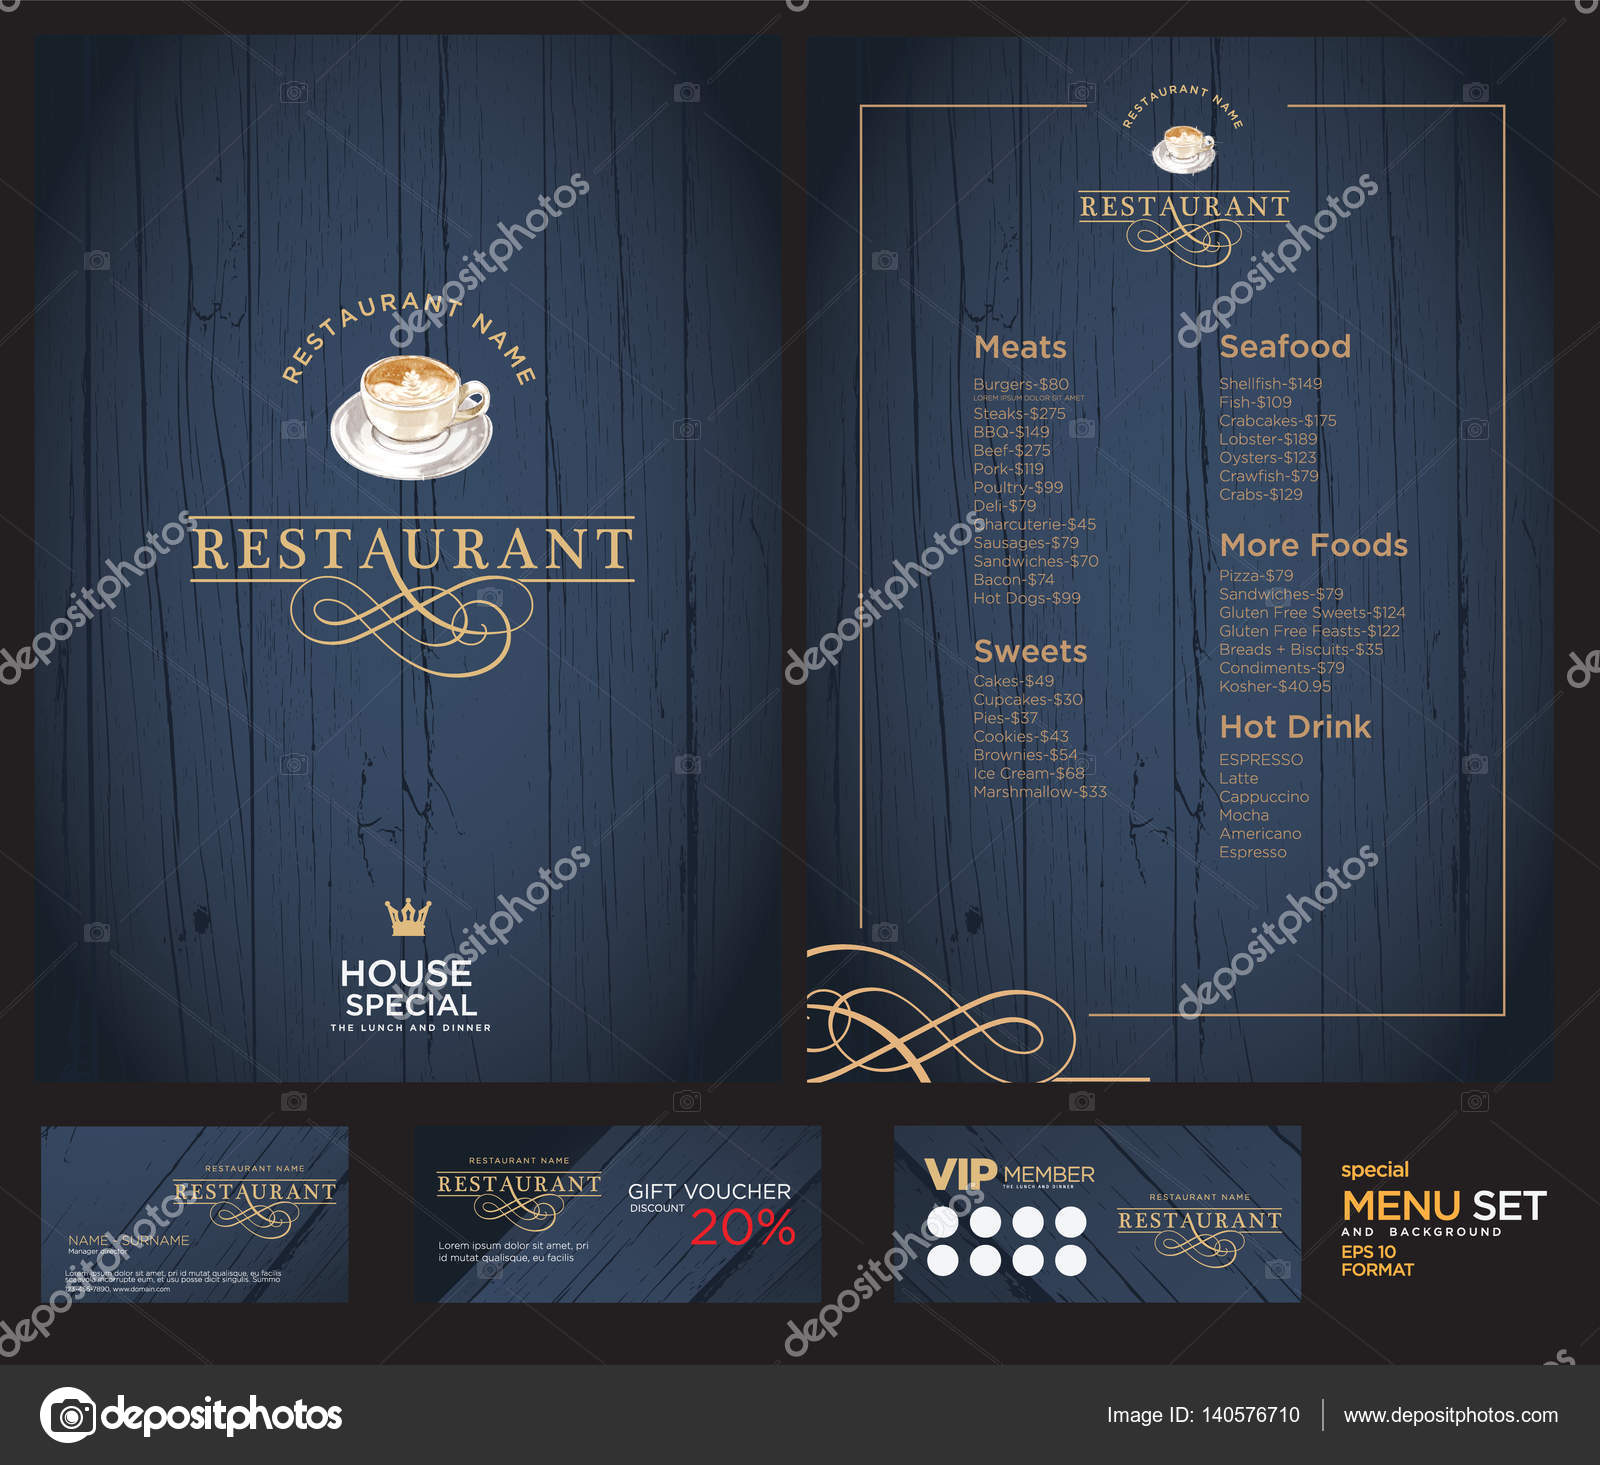 Creative Menu Design Layout Design Design Set For Menu Restaurant Stock Vector C Phaisarnwong 140576710